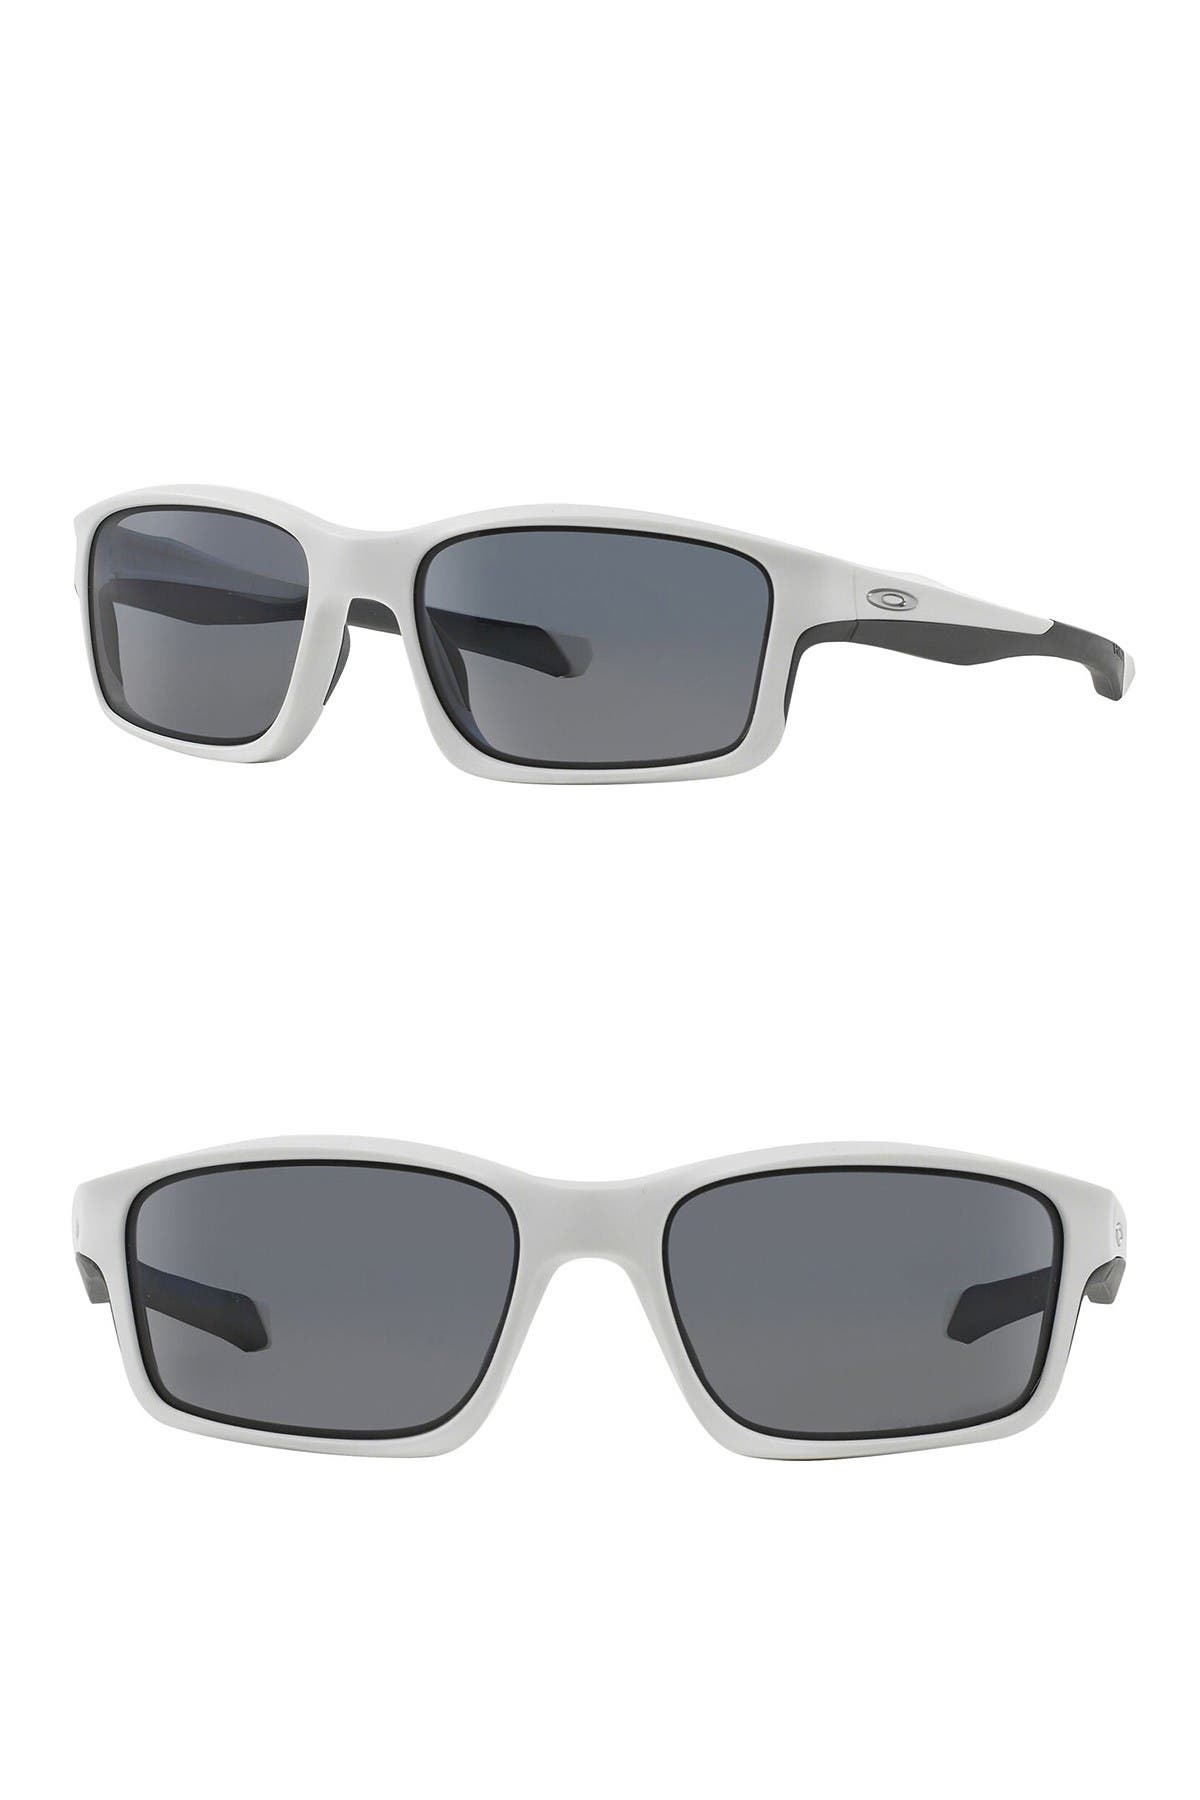 Image of Oakley Chainlink Polarized 57mm Sunglasses